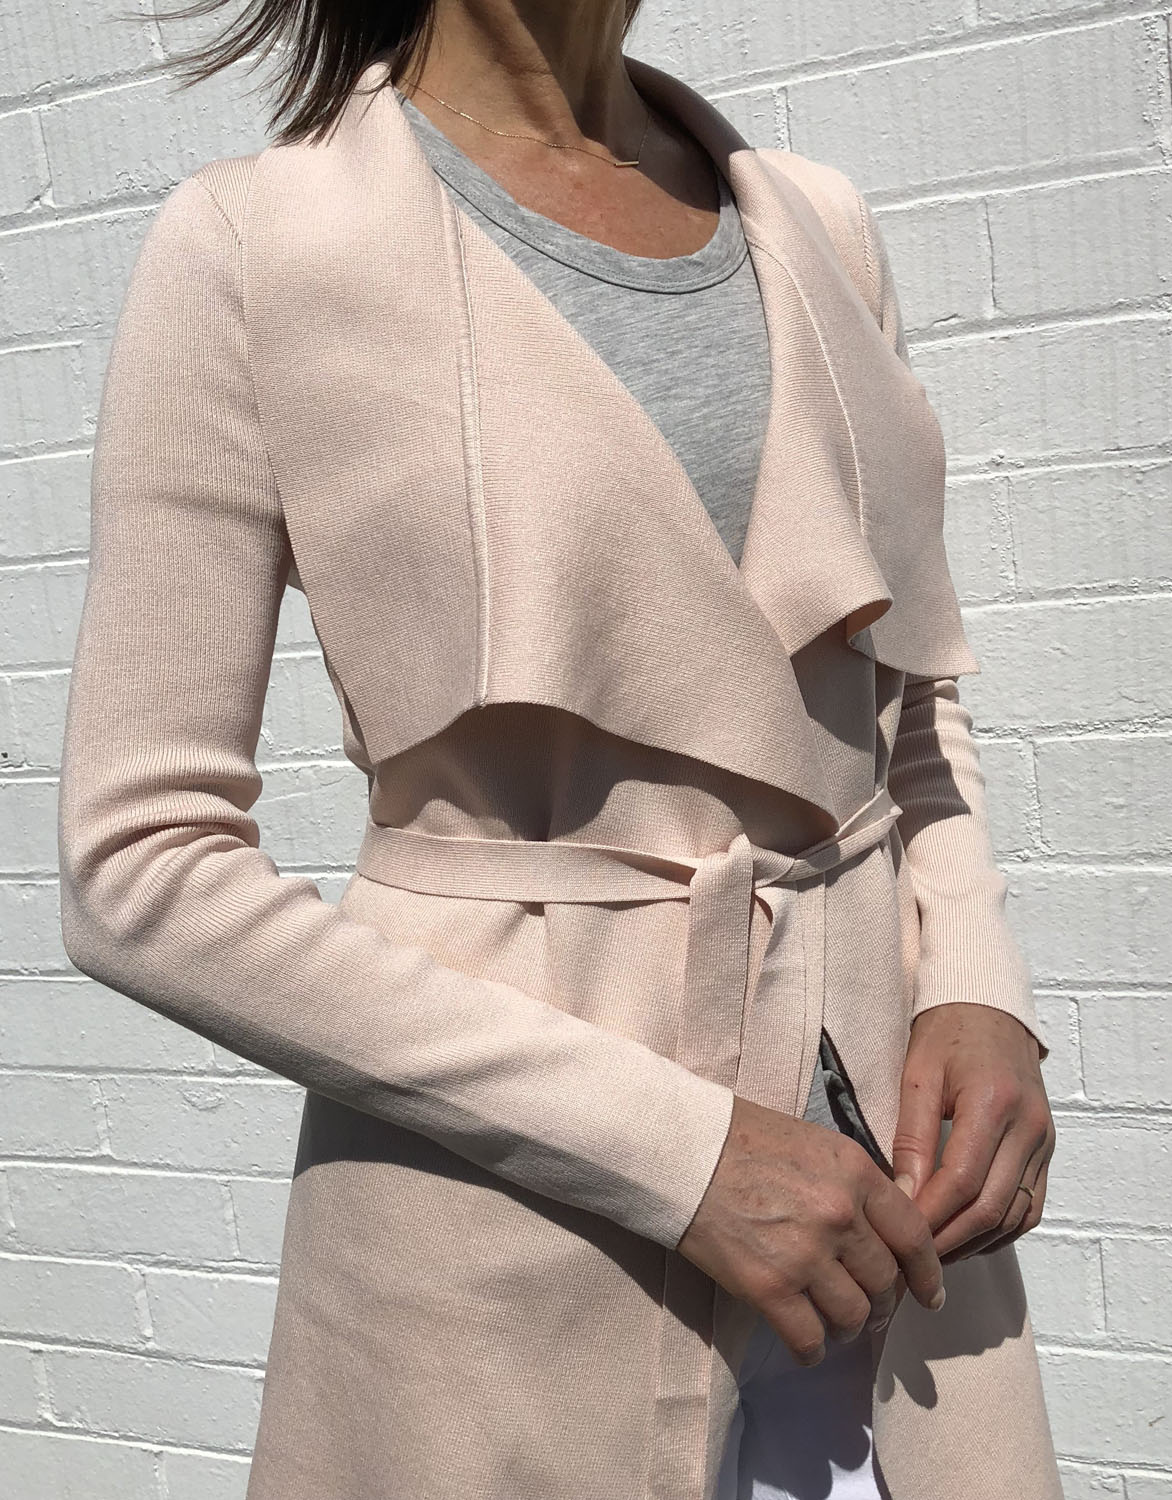 a911cdca0 The Uptown Jacket - Blush - White and Co